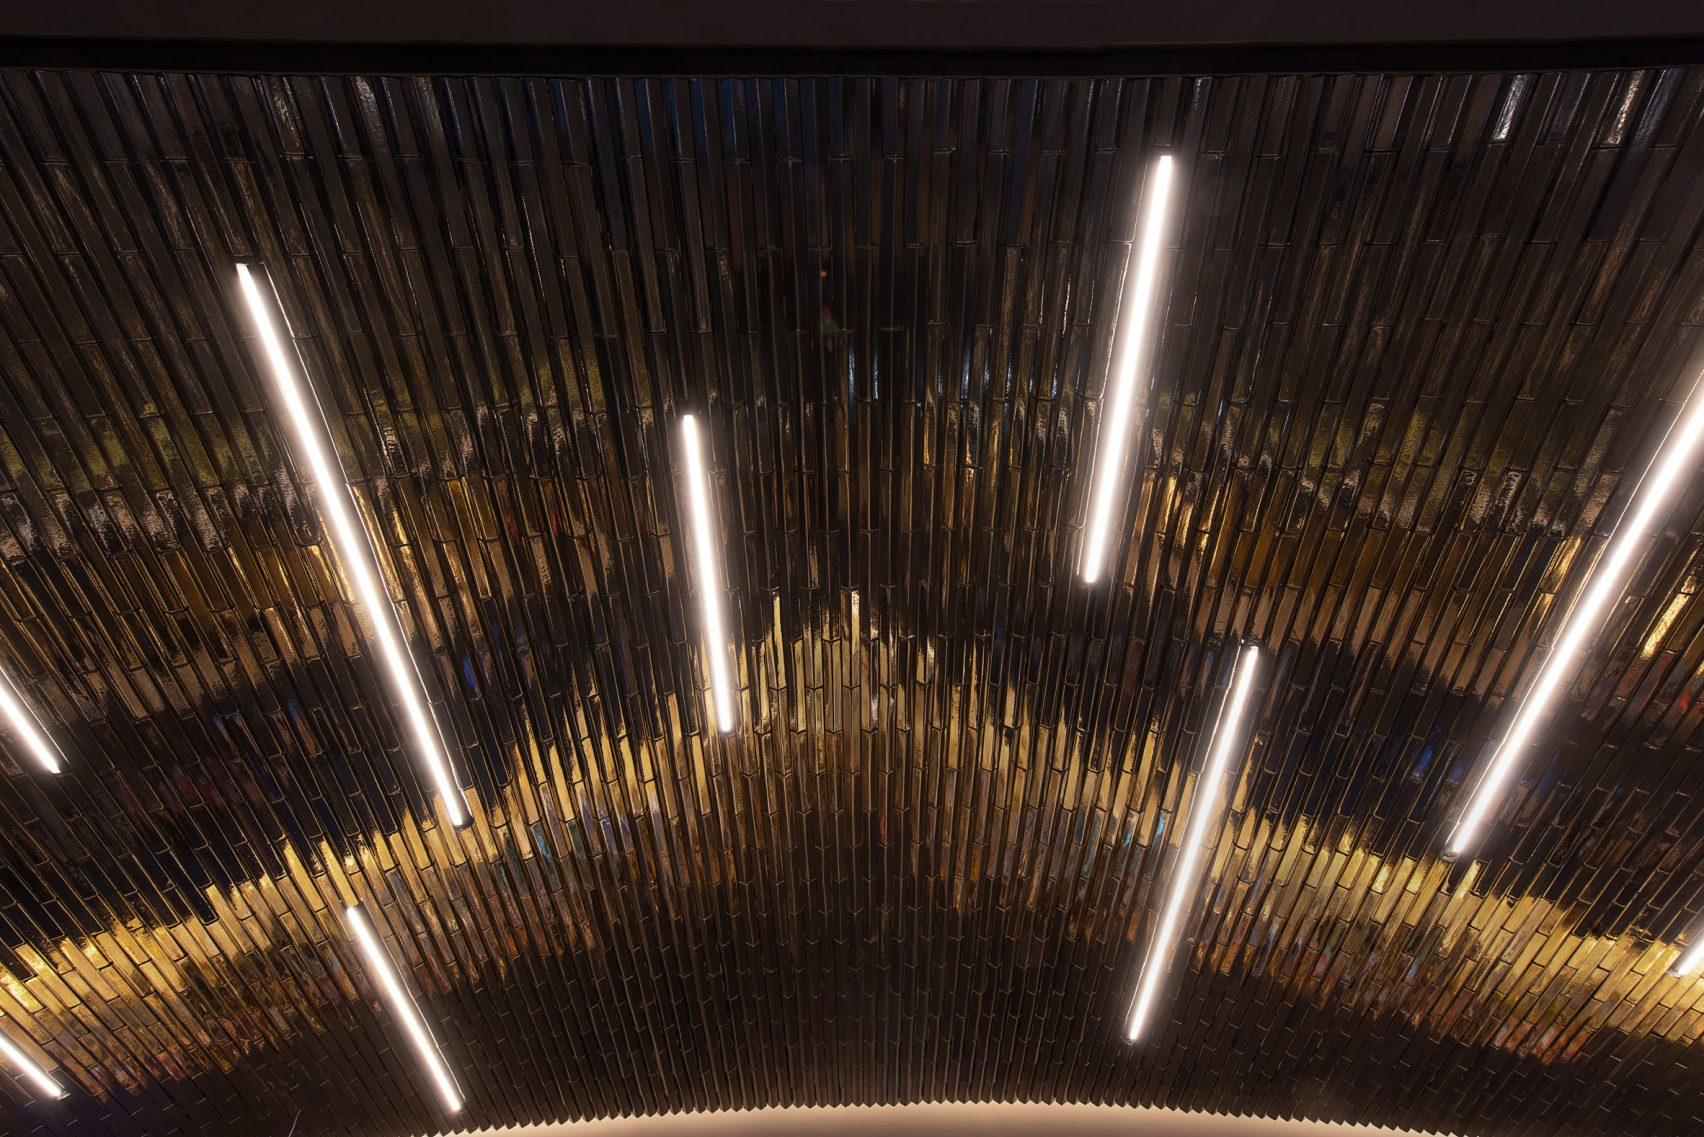 bar-auditorio-nacional-esrawe-interiors-mexico_dezeen_2364_col_6-1704x1137